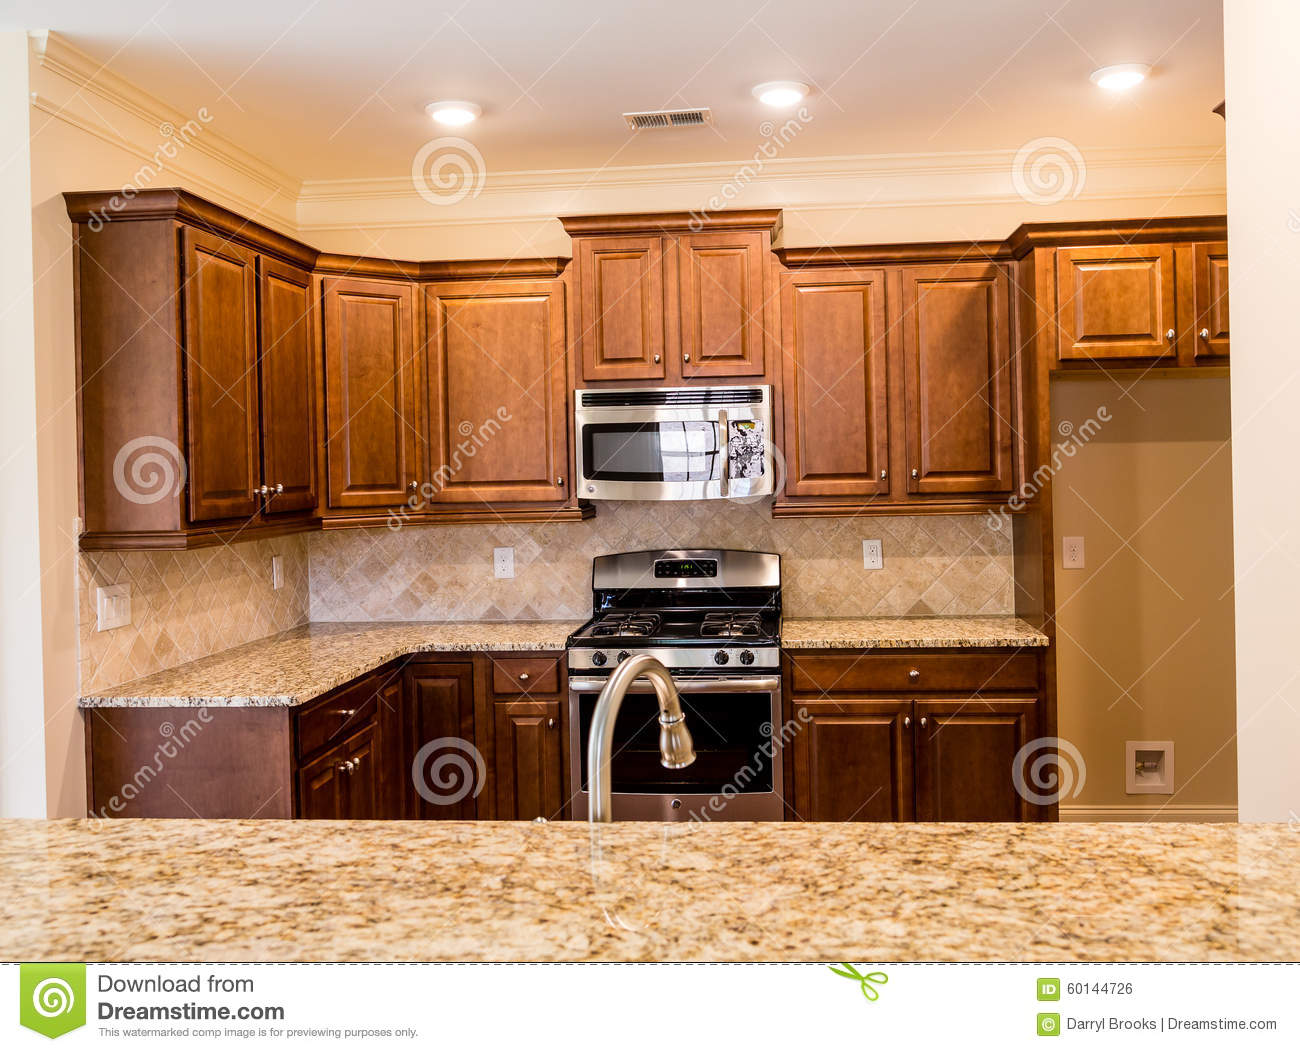 Dark Wood Cabinets And Granite Countertops Stock Photo Image Of Architecture Interior 60144726